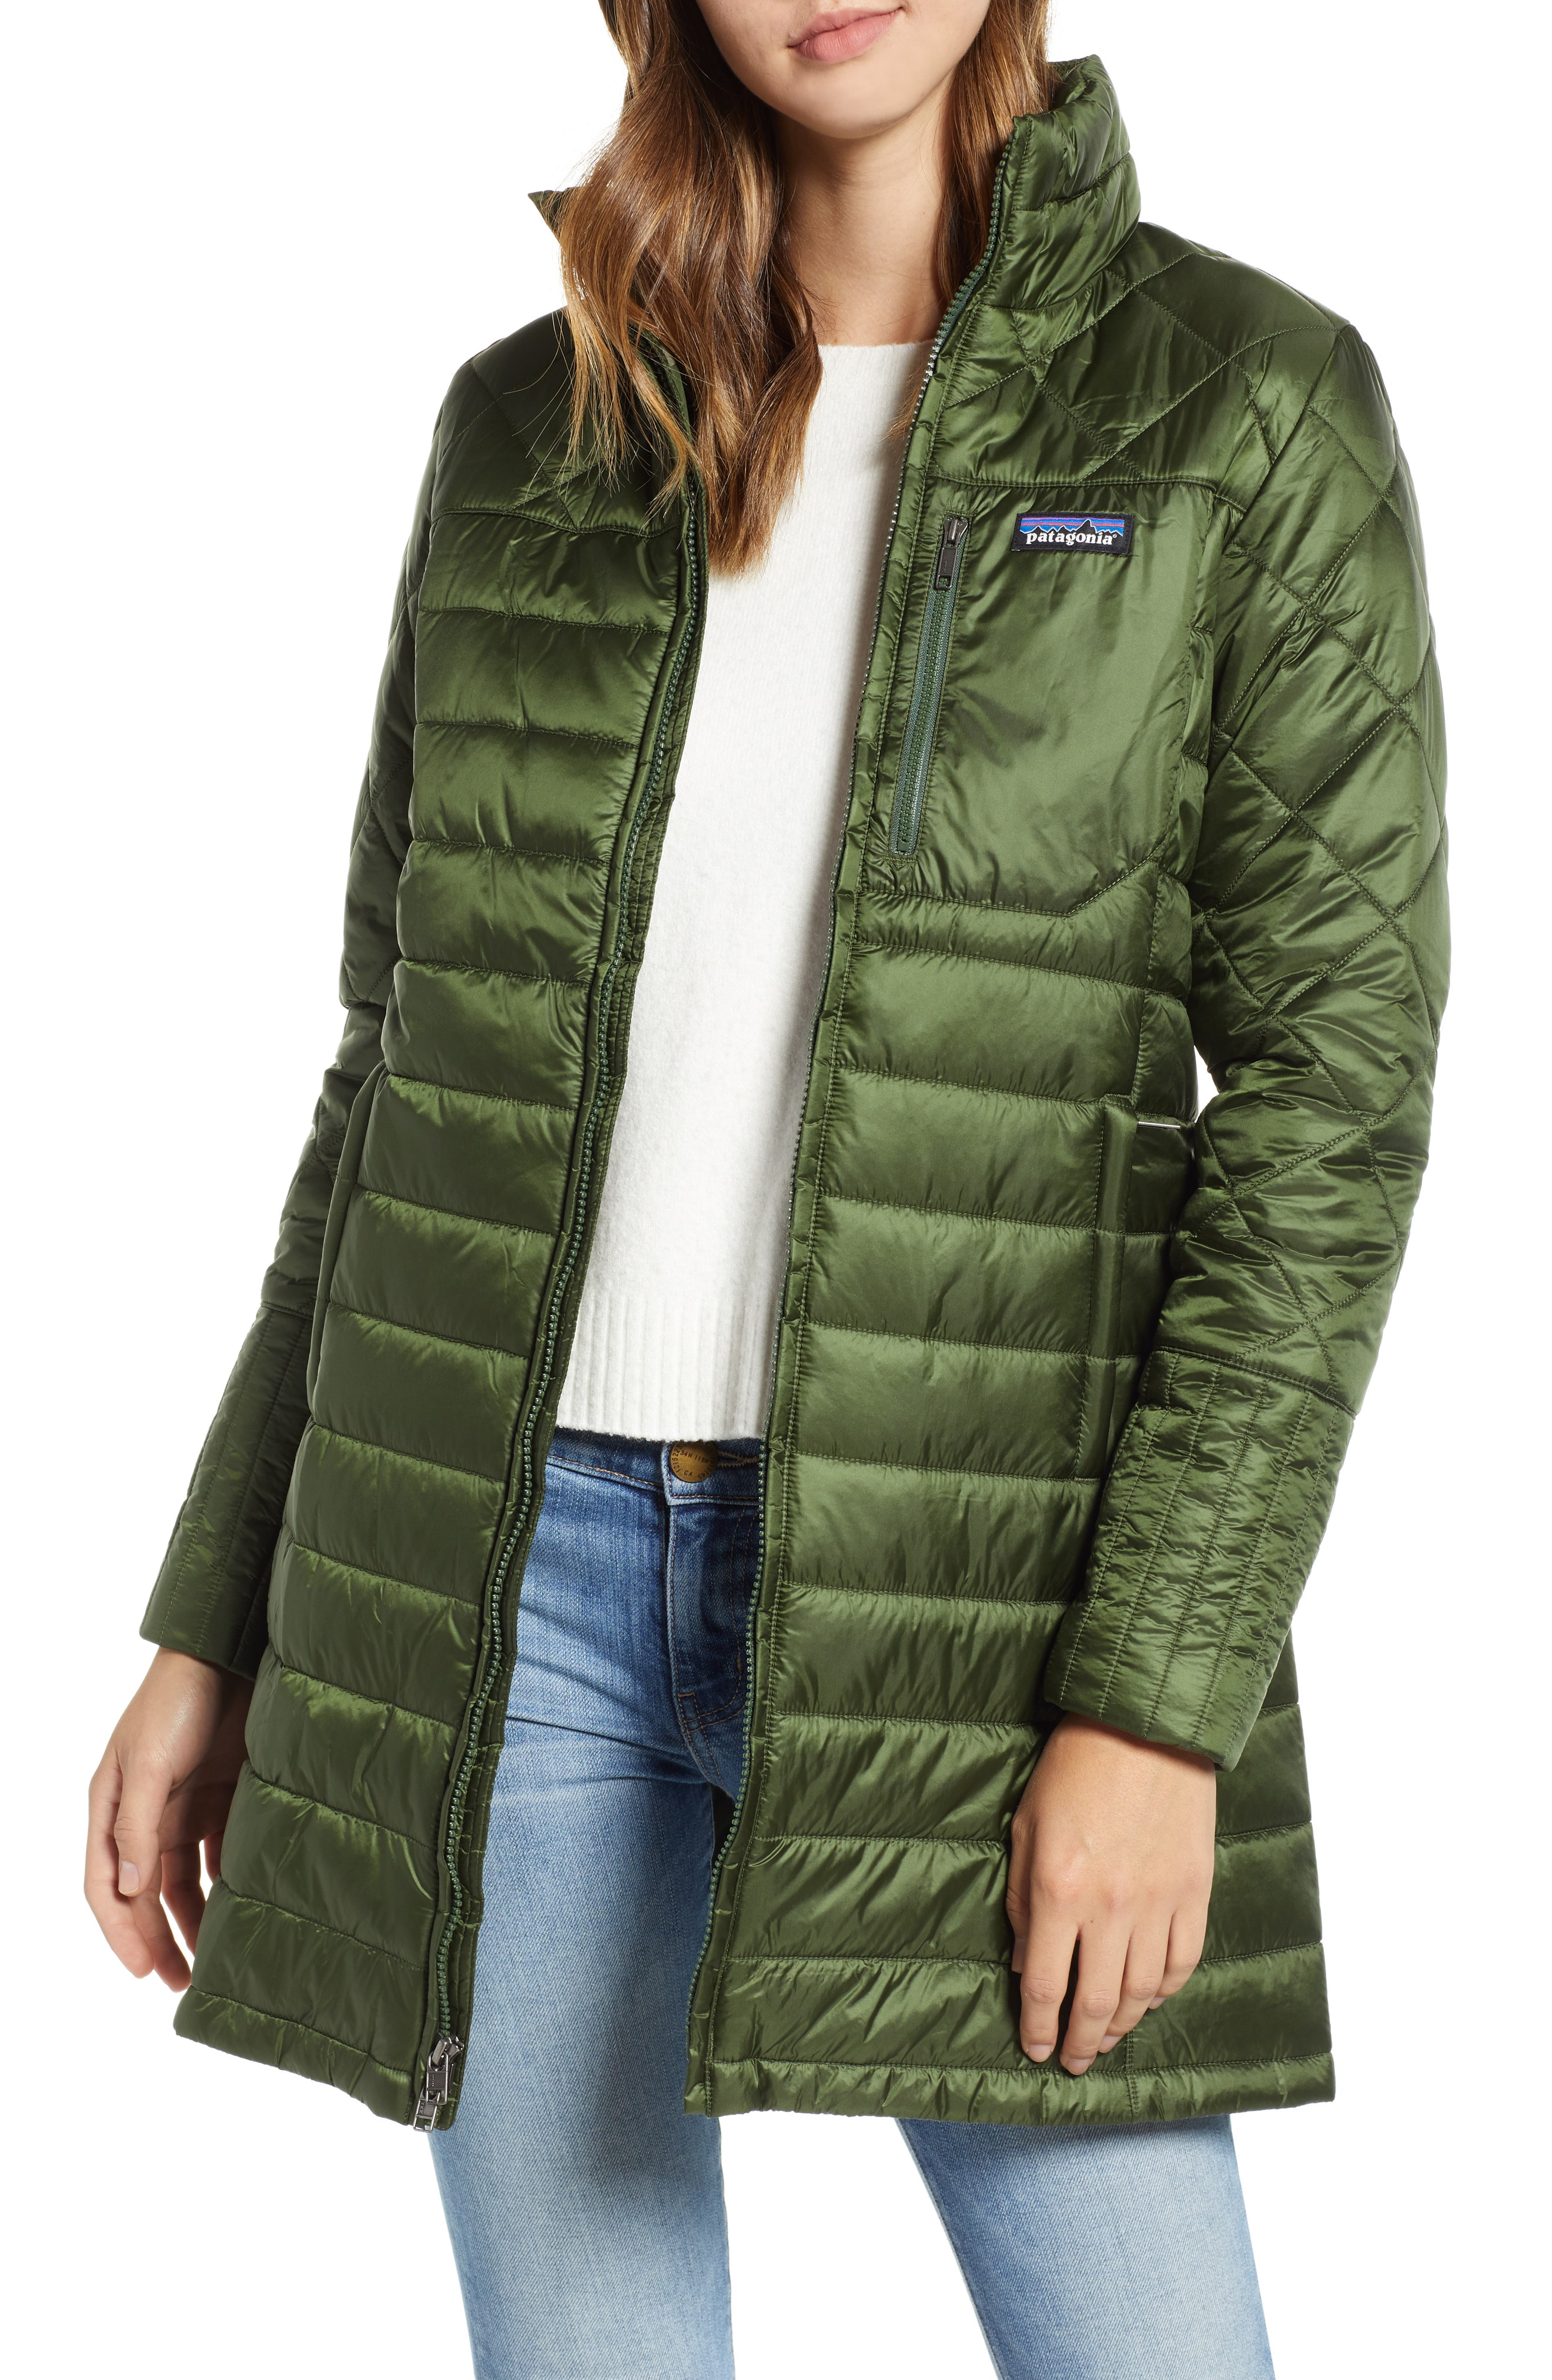 9c6e2554 Recently bought this jacket because so many readers have been asking for a  packable travel jacket. What do you think?! I love the color.